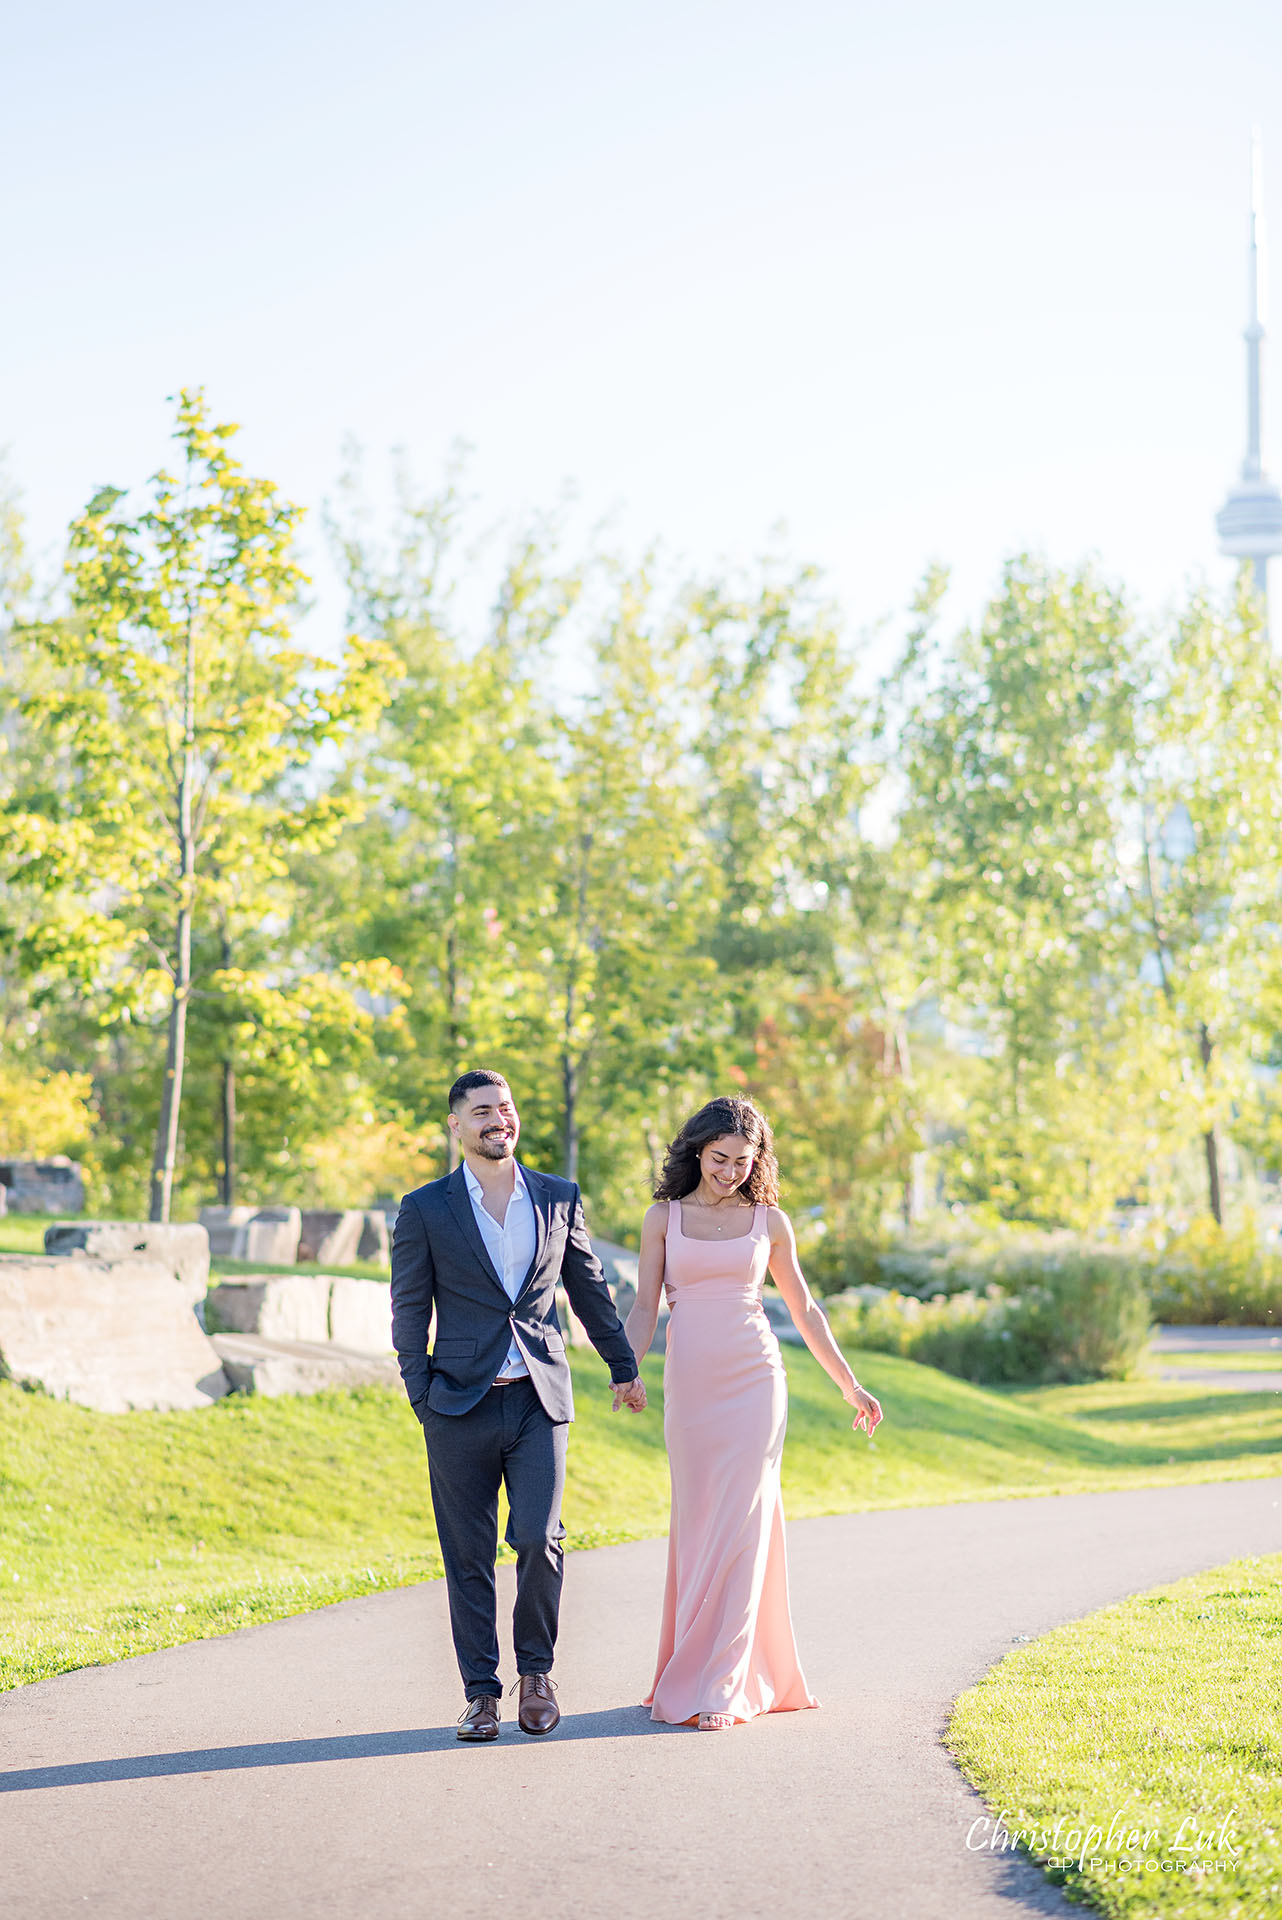 Christopher Luk Trillium Park Ontario Place Waterfront Engagement Session Toronto Wedding Photographer Bride Groom Natural Candid Photojournalistic CN Tower Skyline Background Trees Sunrise Walkway Path Trail Vertical Portrait Laugh